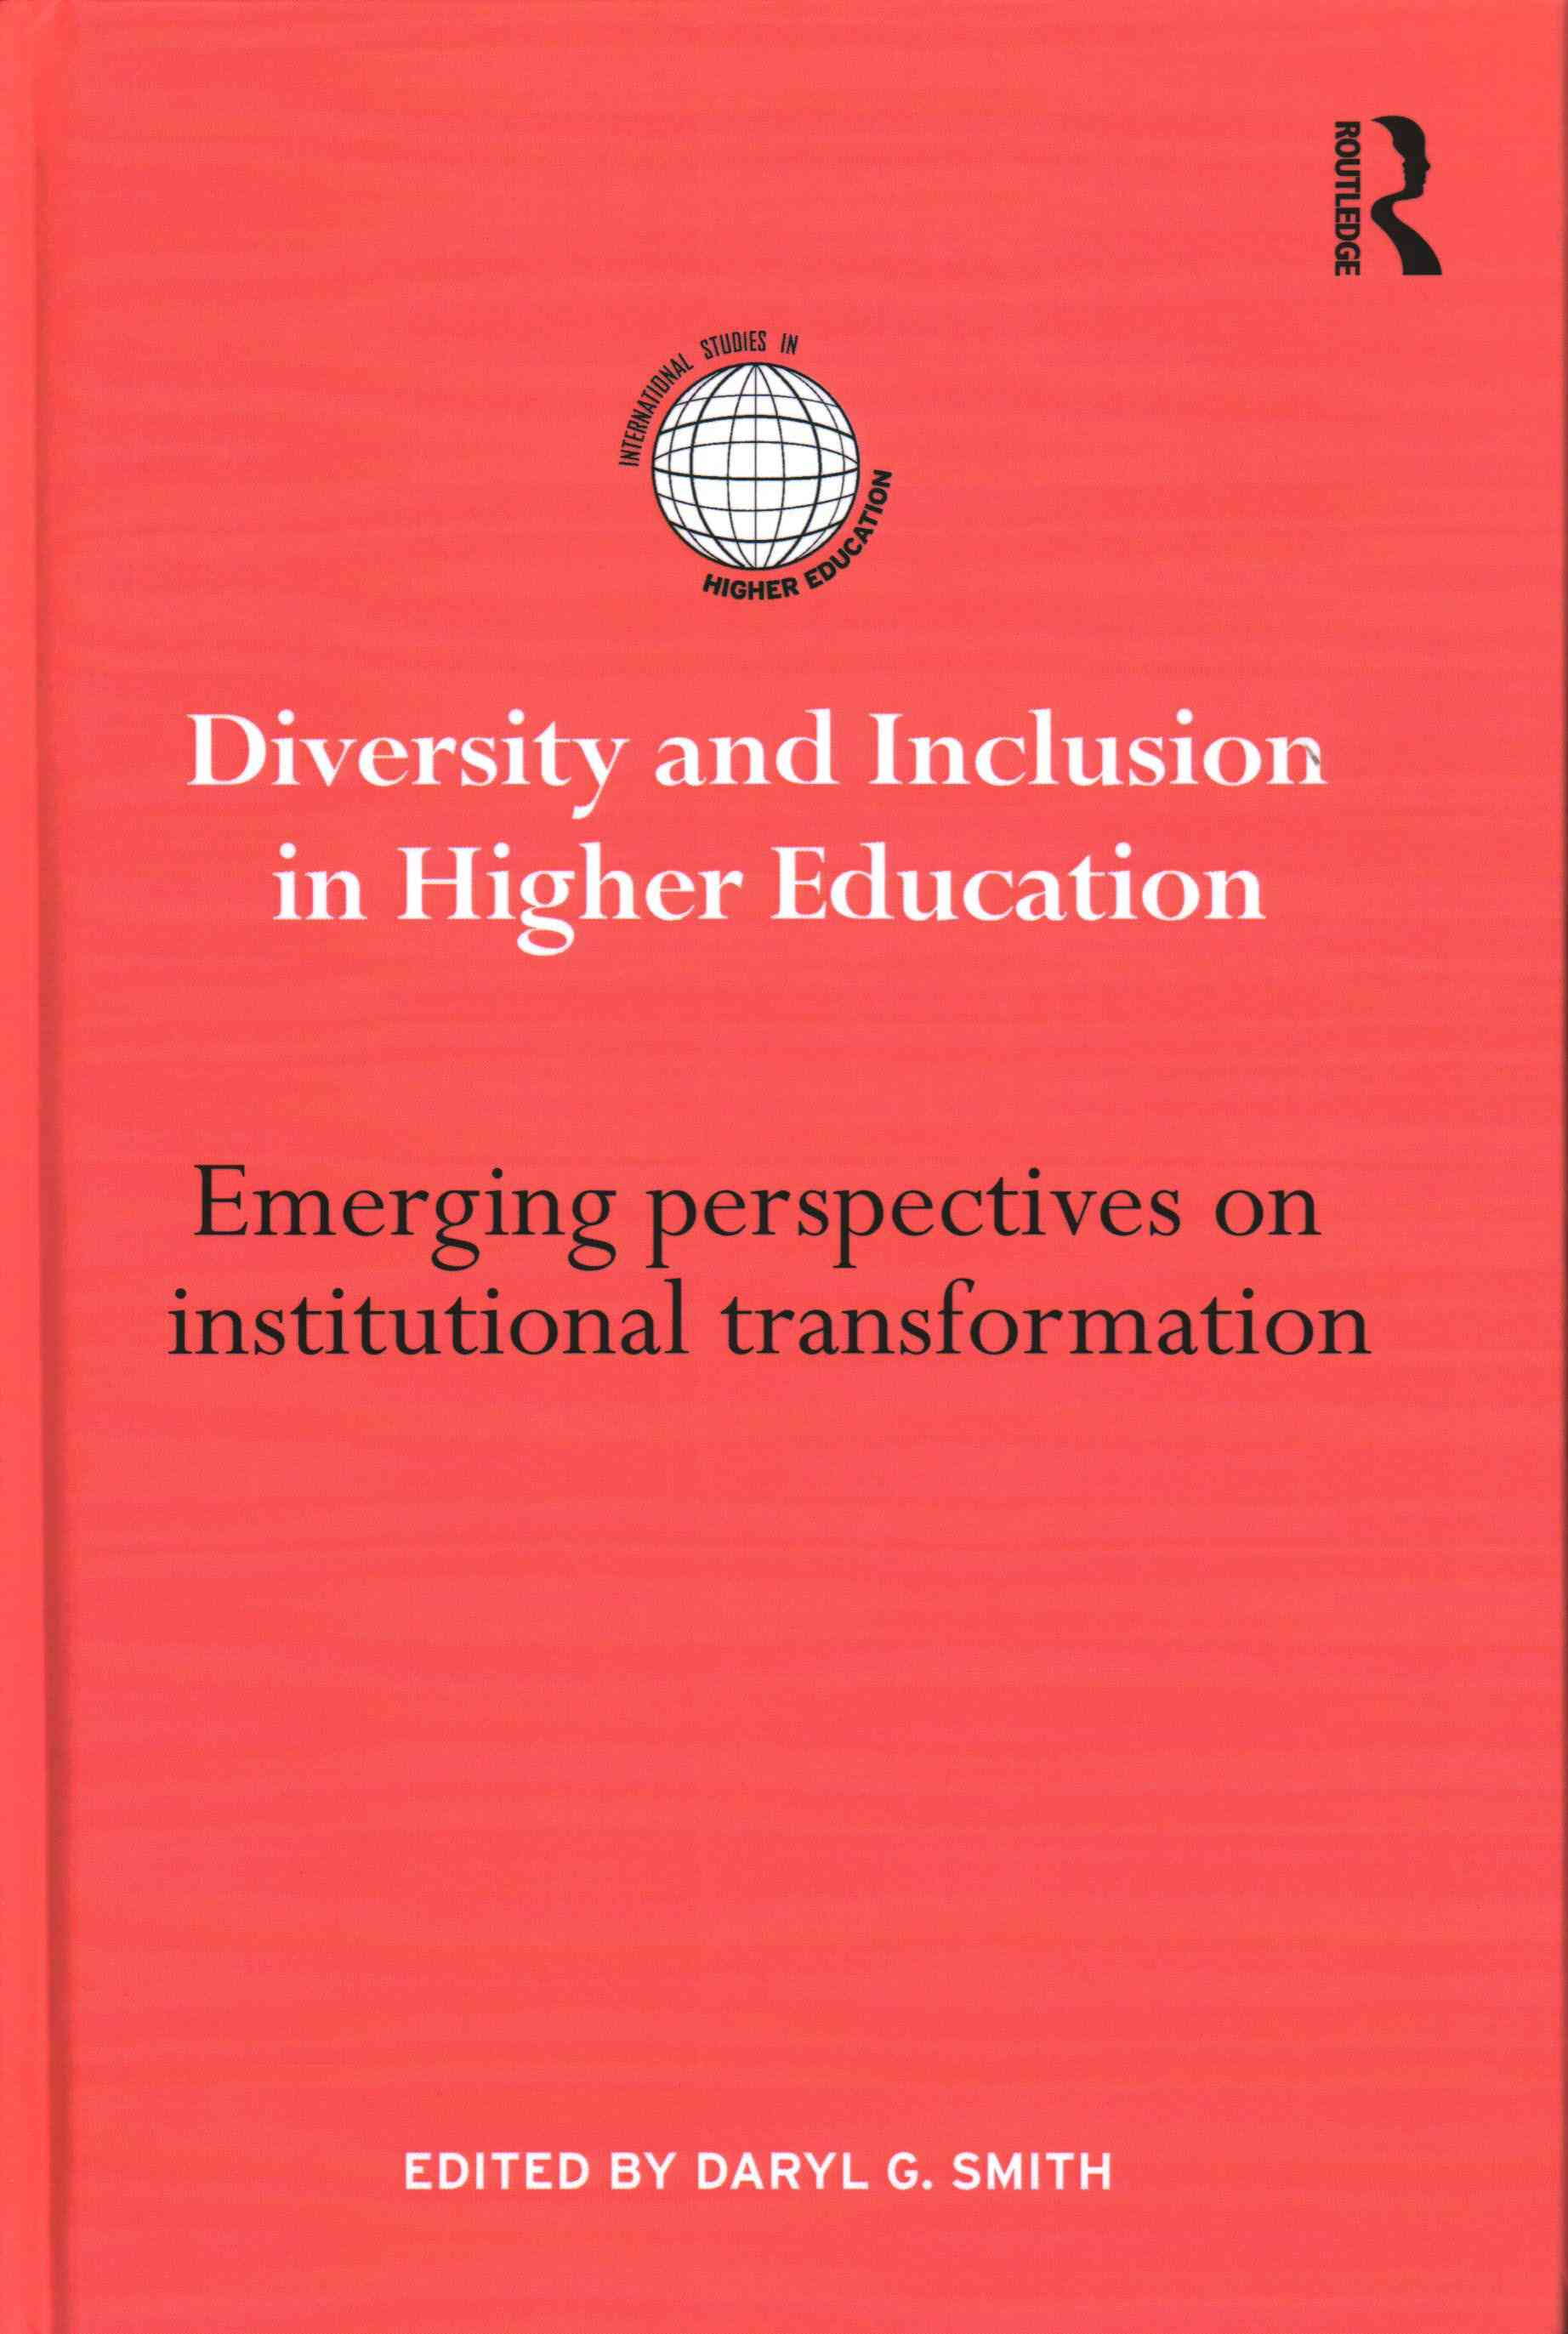 Diversity and Inclusion in Higher Education By Smith, Daryl (EDT)